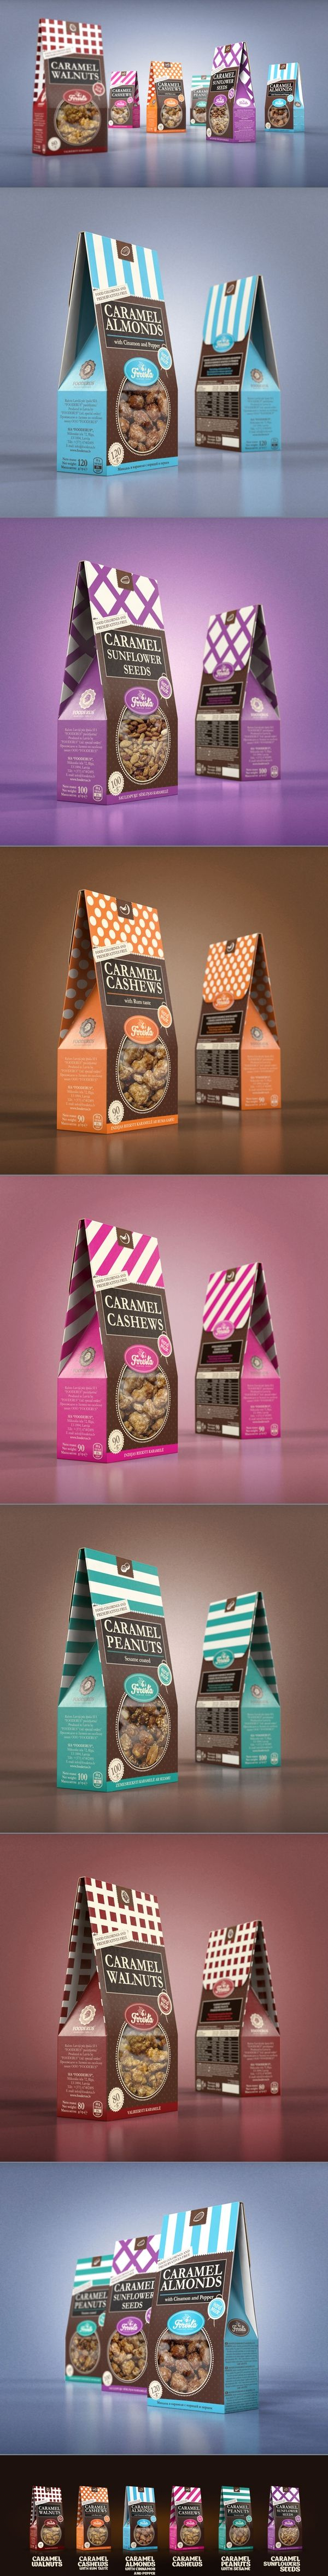 Sugar nuts :  Packaging design by Studio43.  Source : http://www.behance.net/gallery/Nuts-packaging/3502503